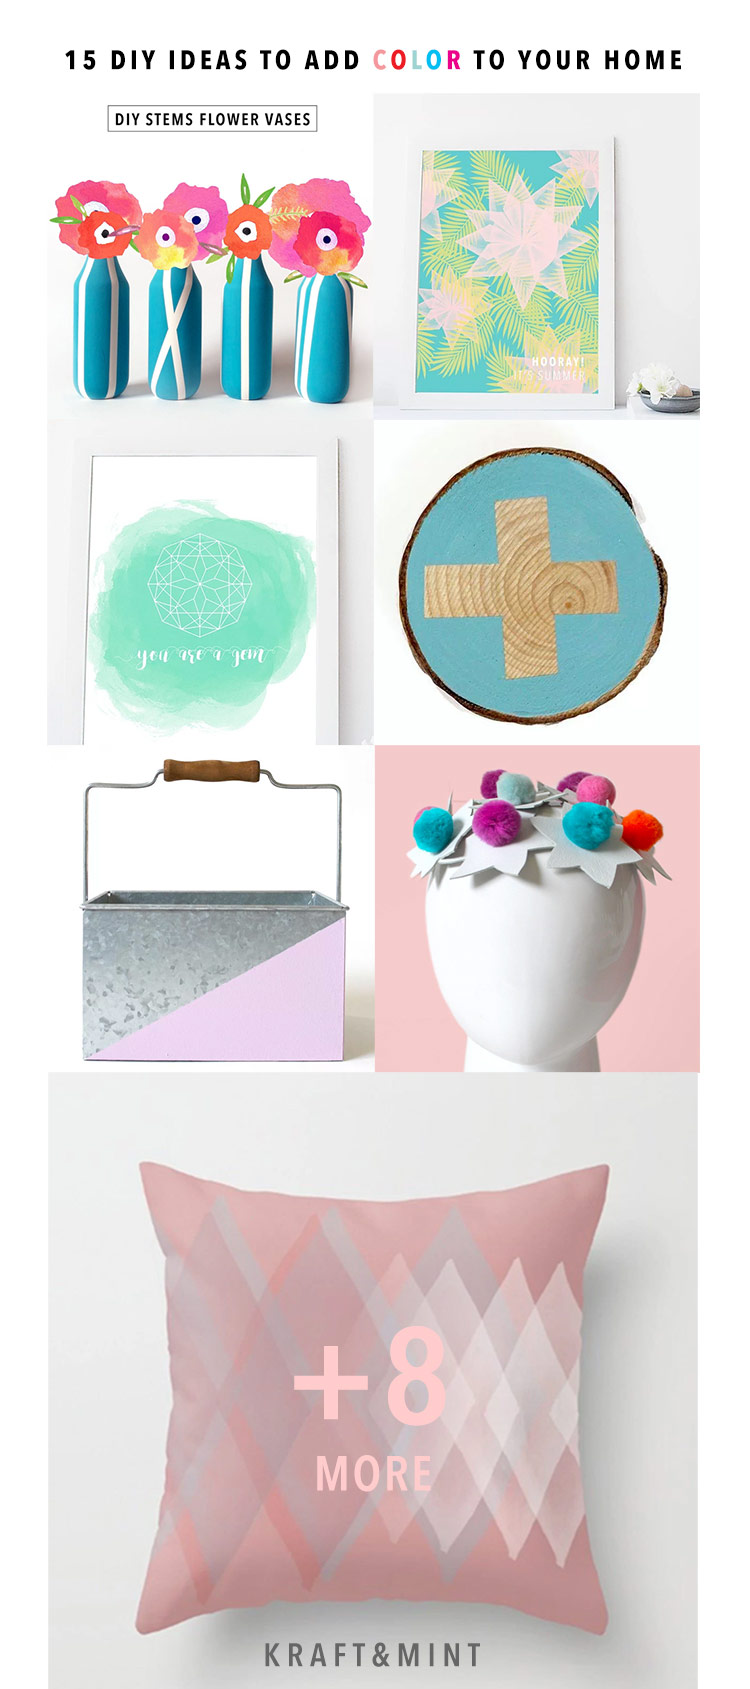 15 DIY ideas to add color to your home kraft&mint